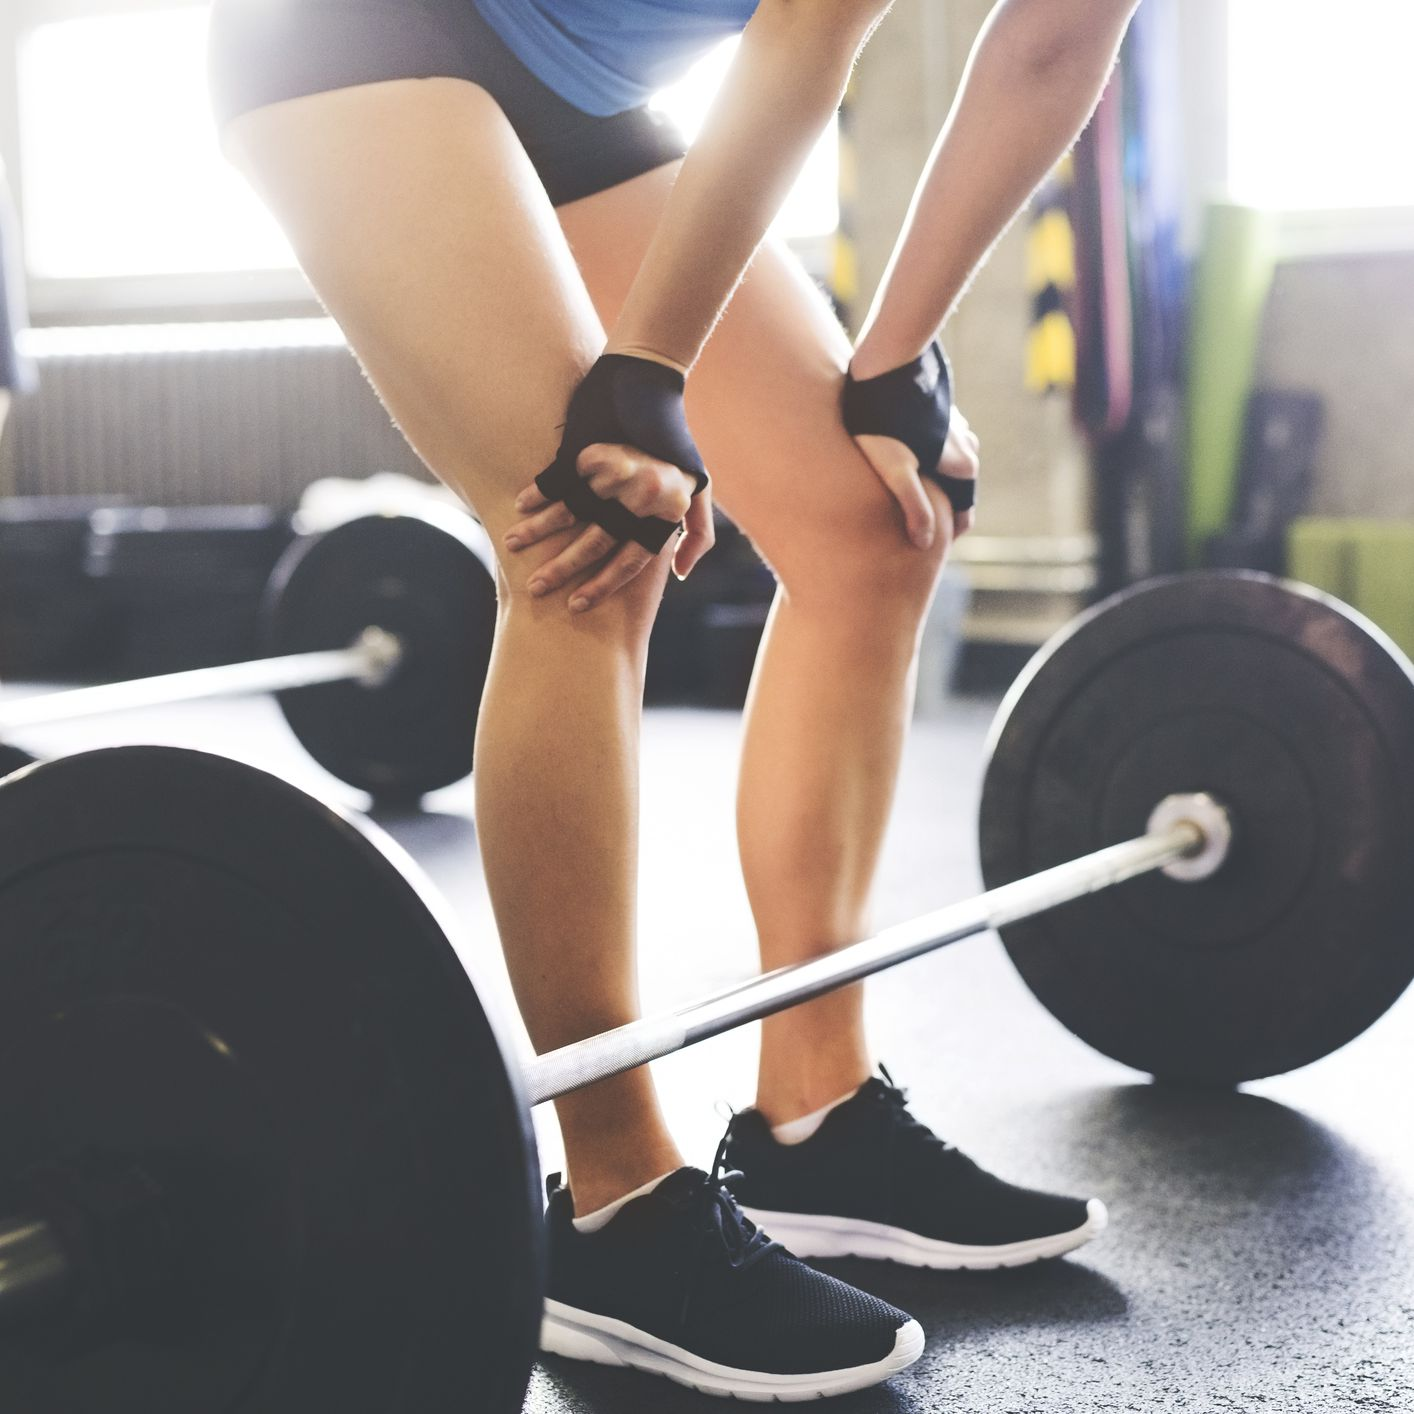 6 Things You Might Not Know About Weight Training